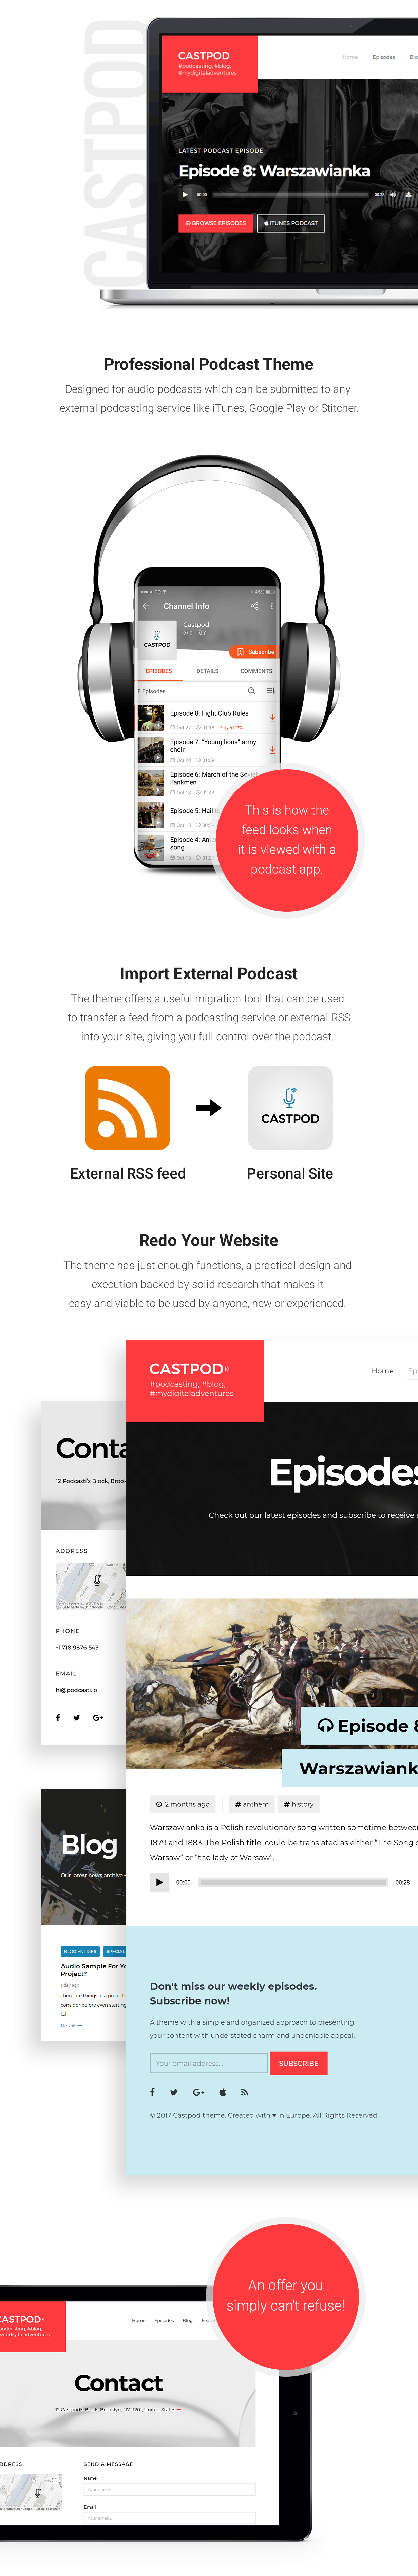 Castpod is a professional WordPress theme designed for audio podcasts, which can be submitted on any external podcasting service like iTunes, Google Play or Stitcher.